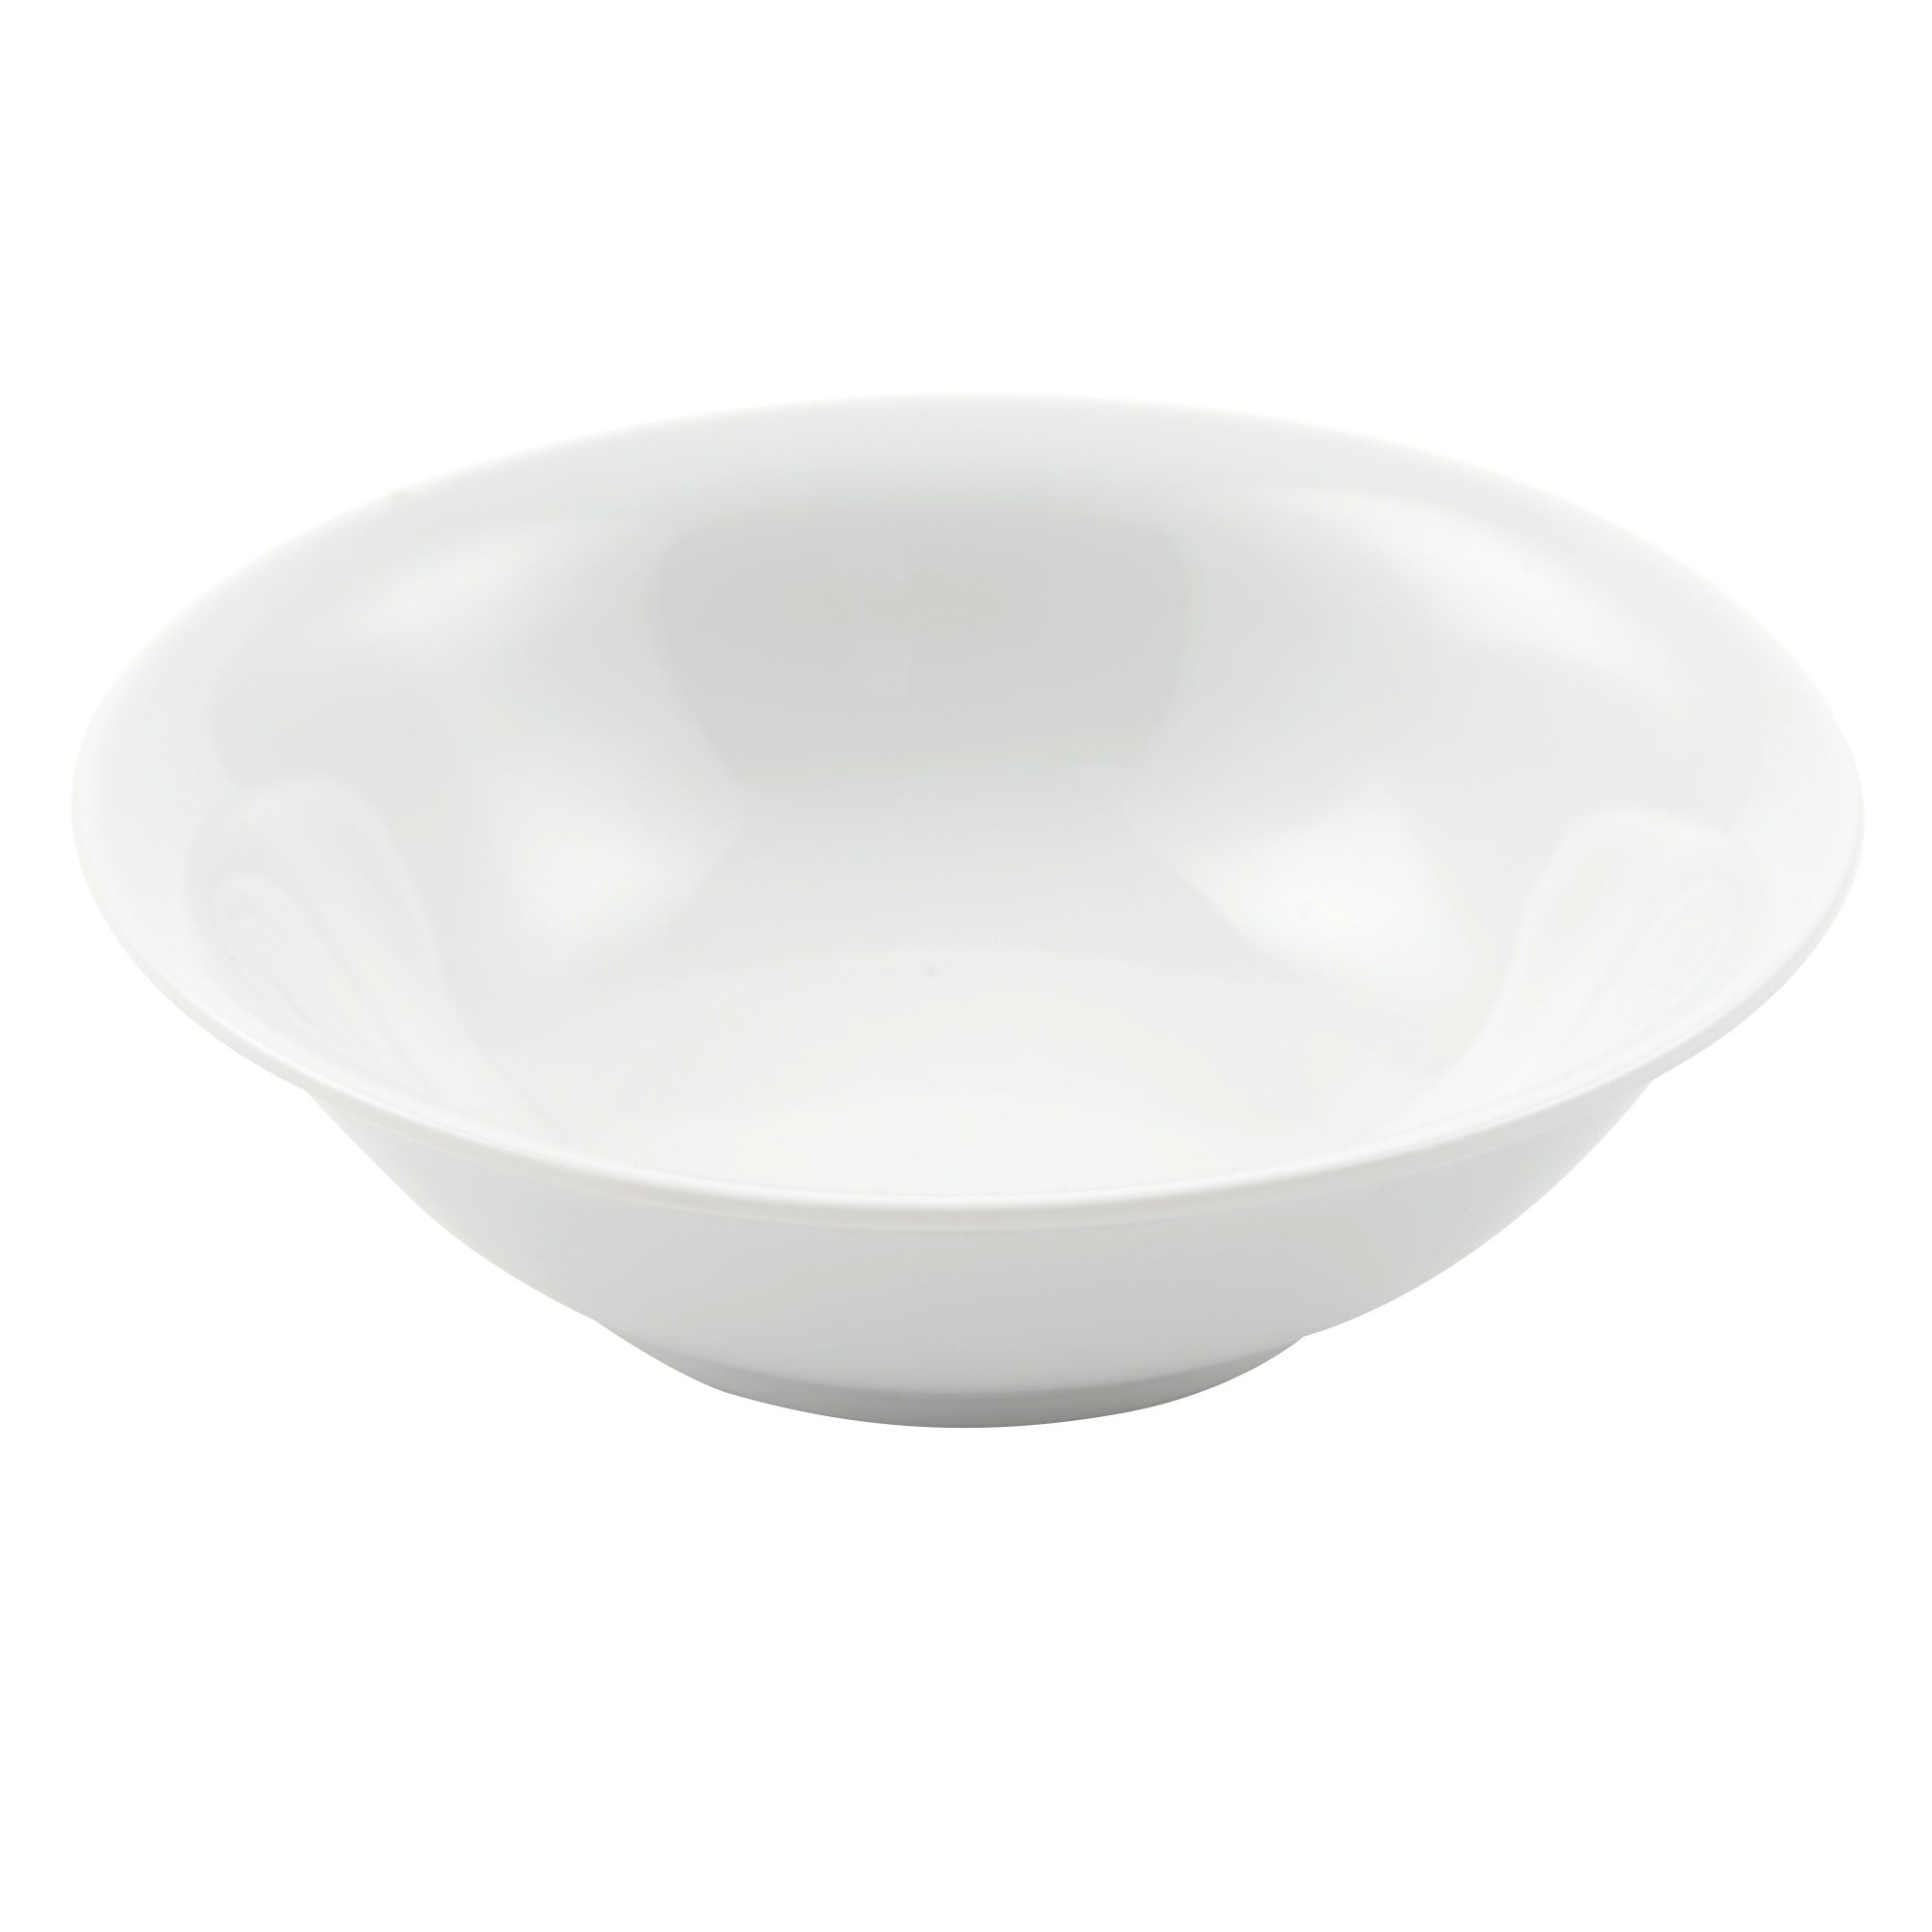 Purity Dinnerware Collection